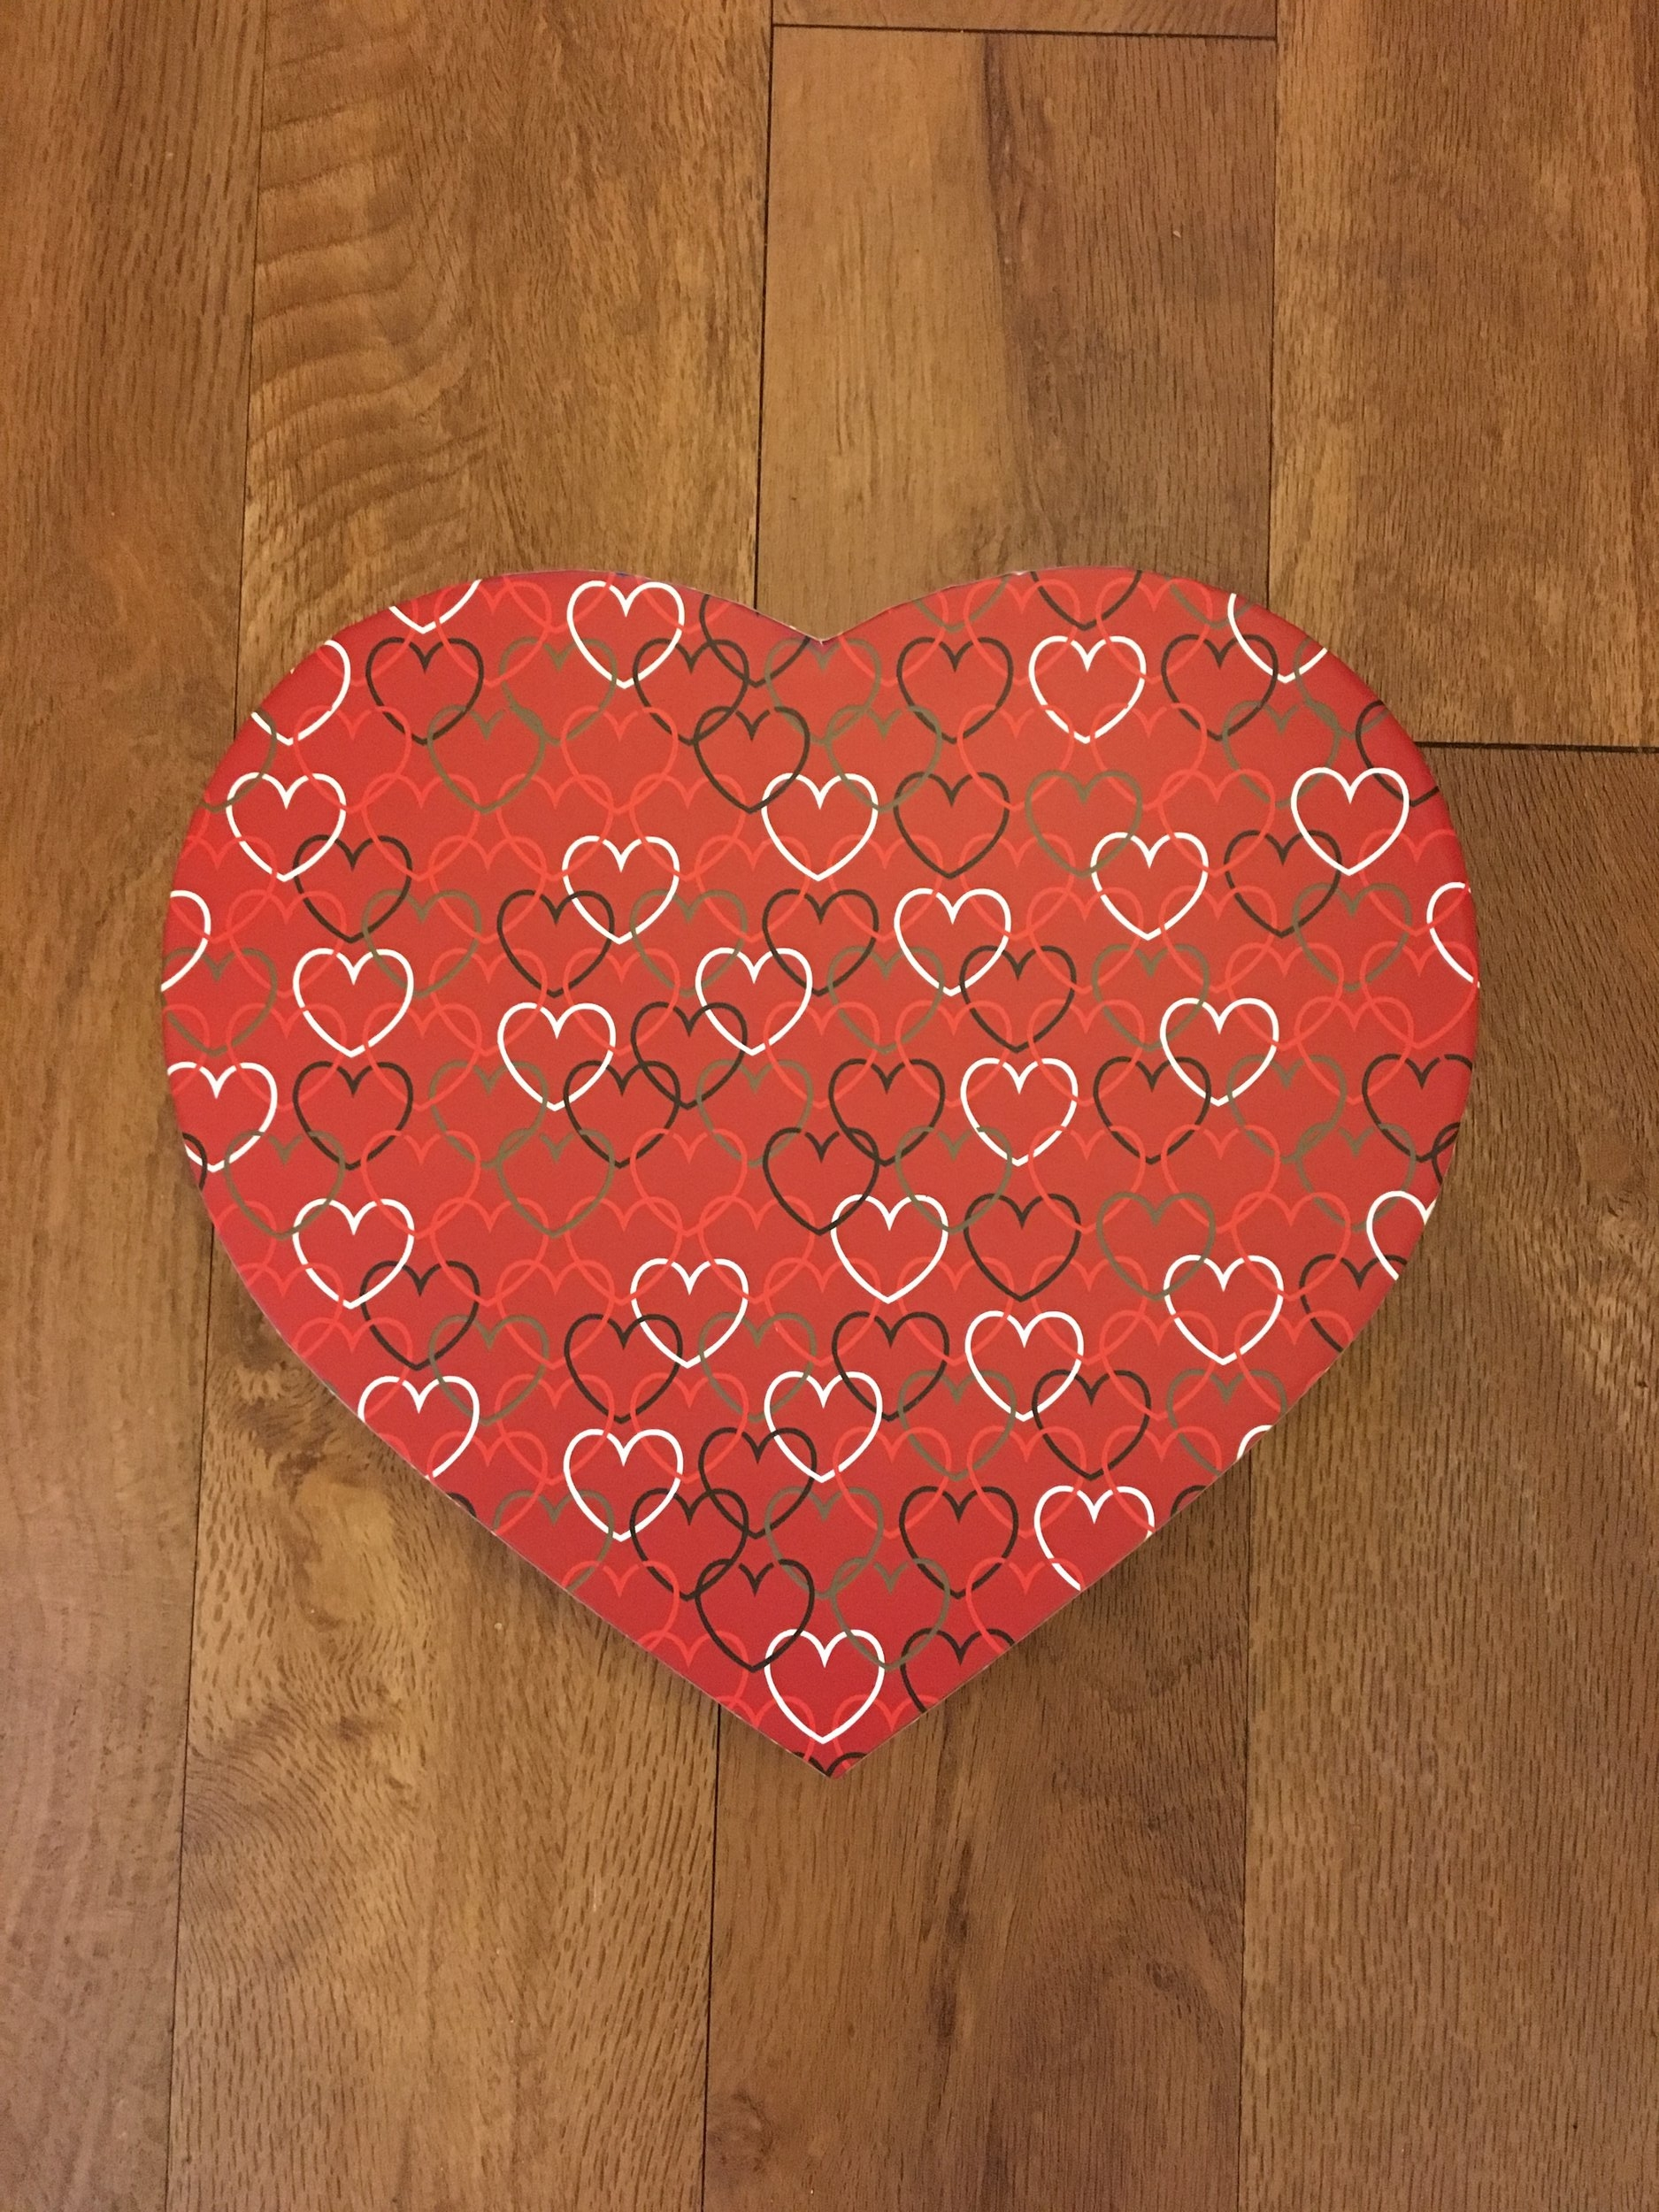 Red Linked Hearts Box   1 lb. box - $10.95  (Does not include candy)